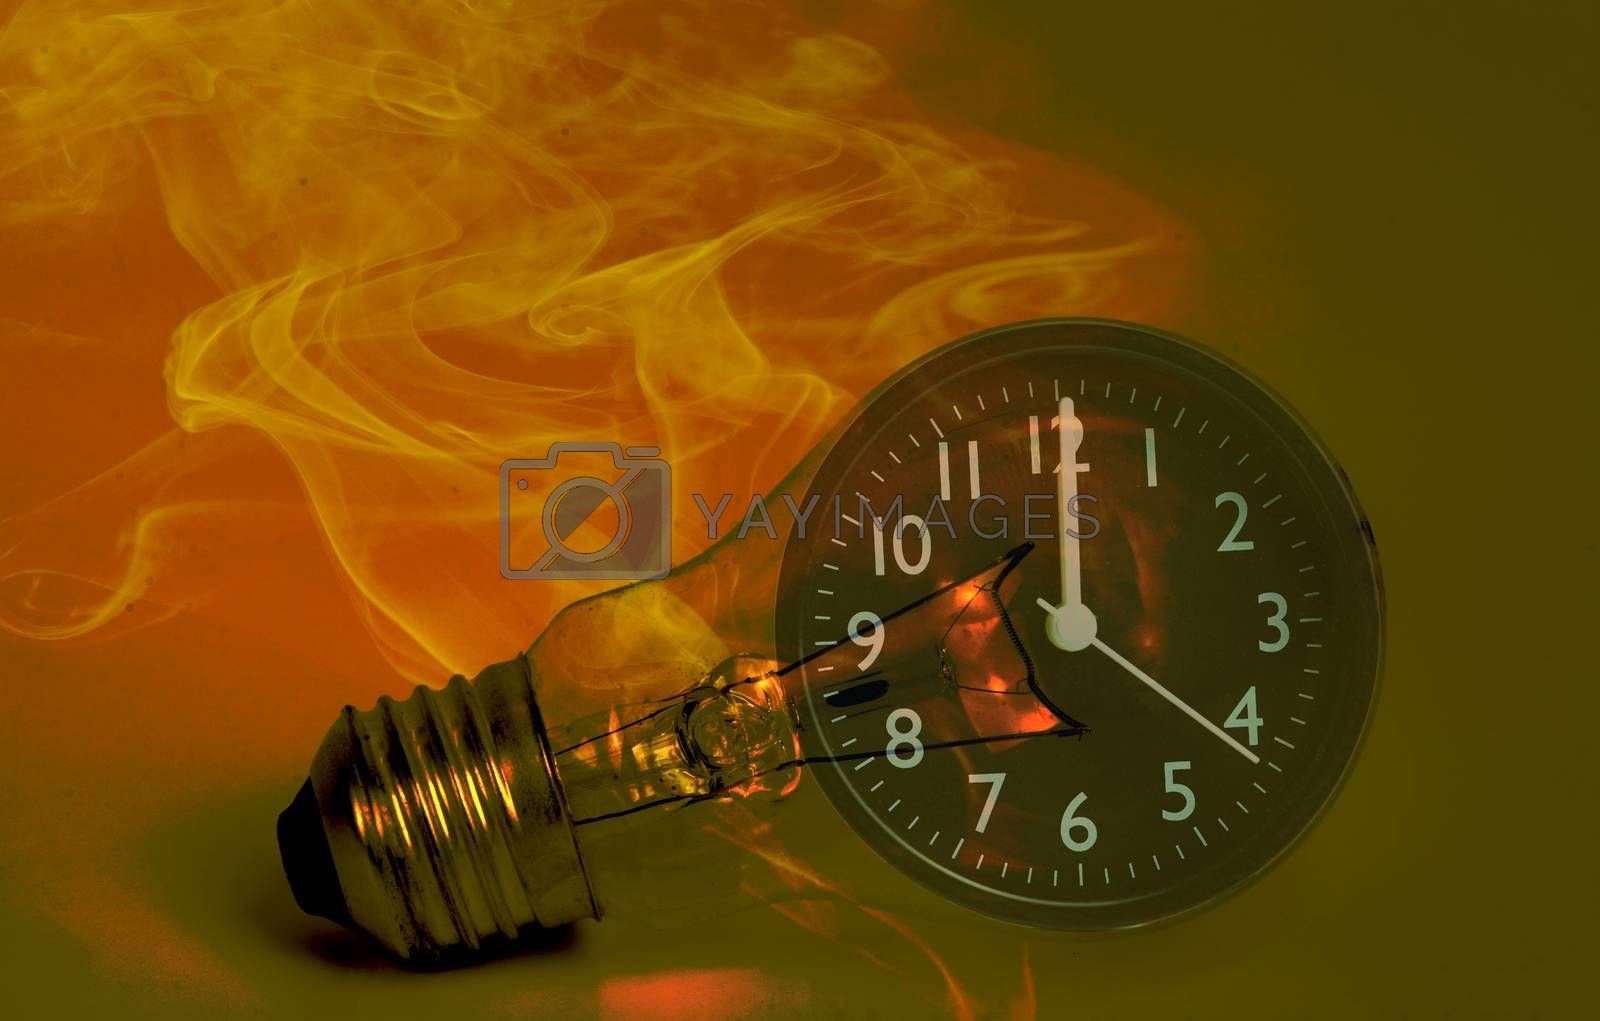 Abstract a light bulb with soot from working and a black analog clock. Show the concept of saving resources on the planet, reducing electricity consumption for future generations.